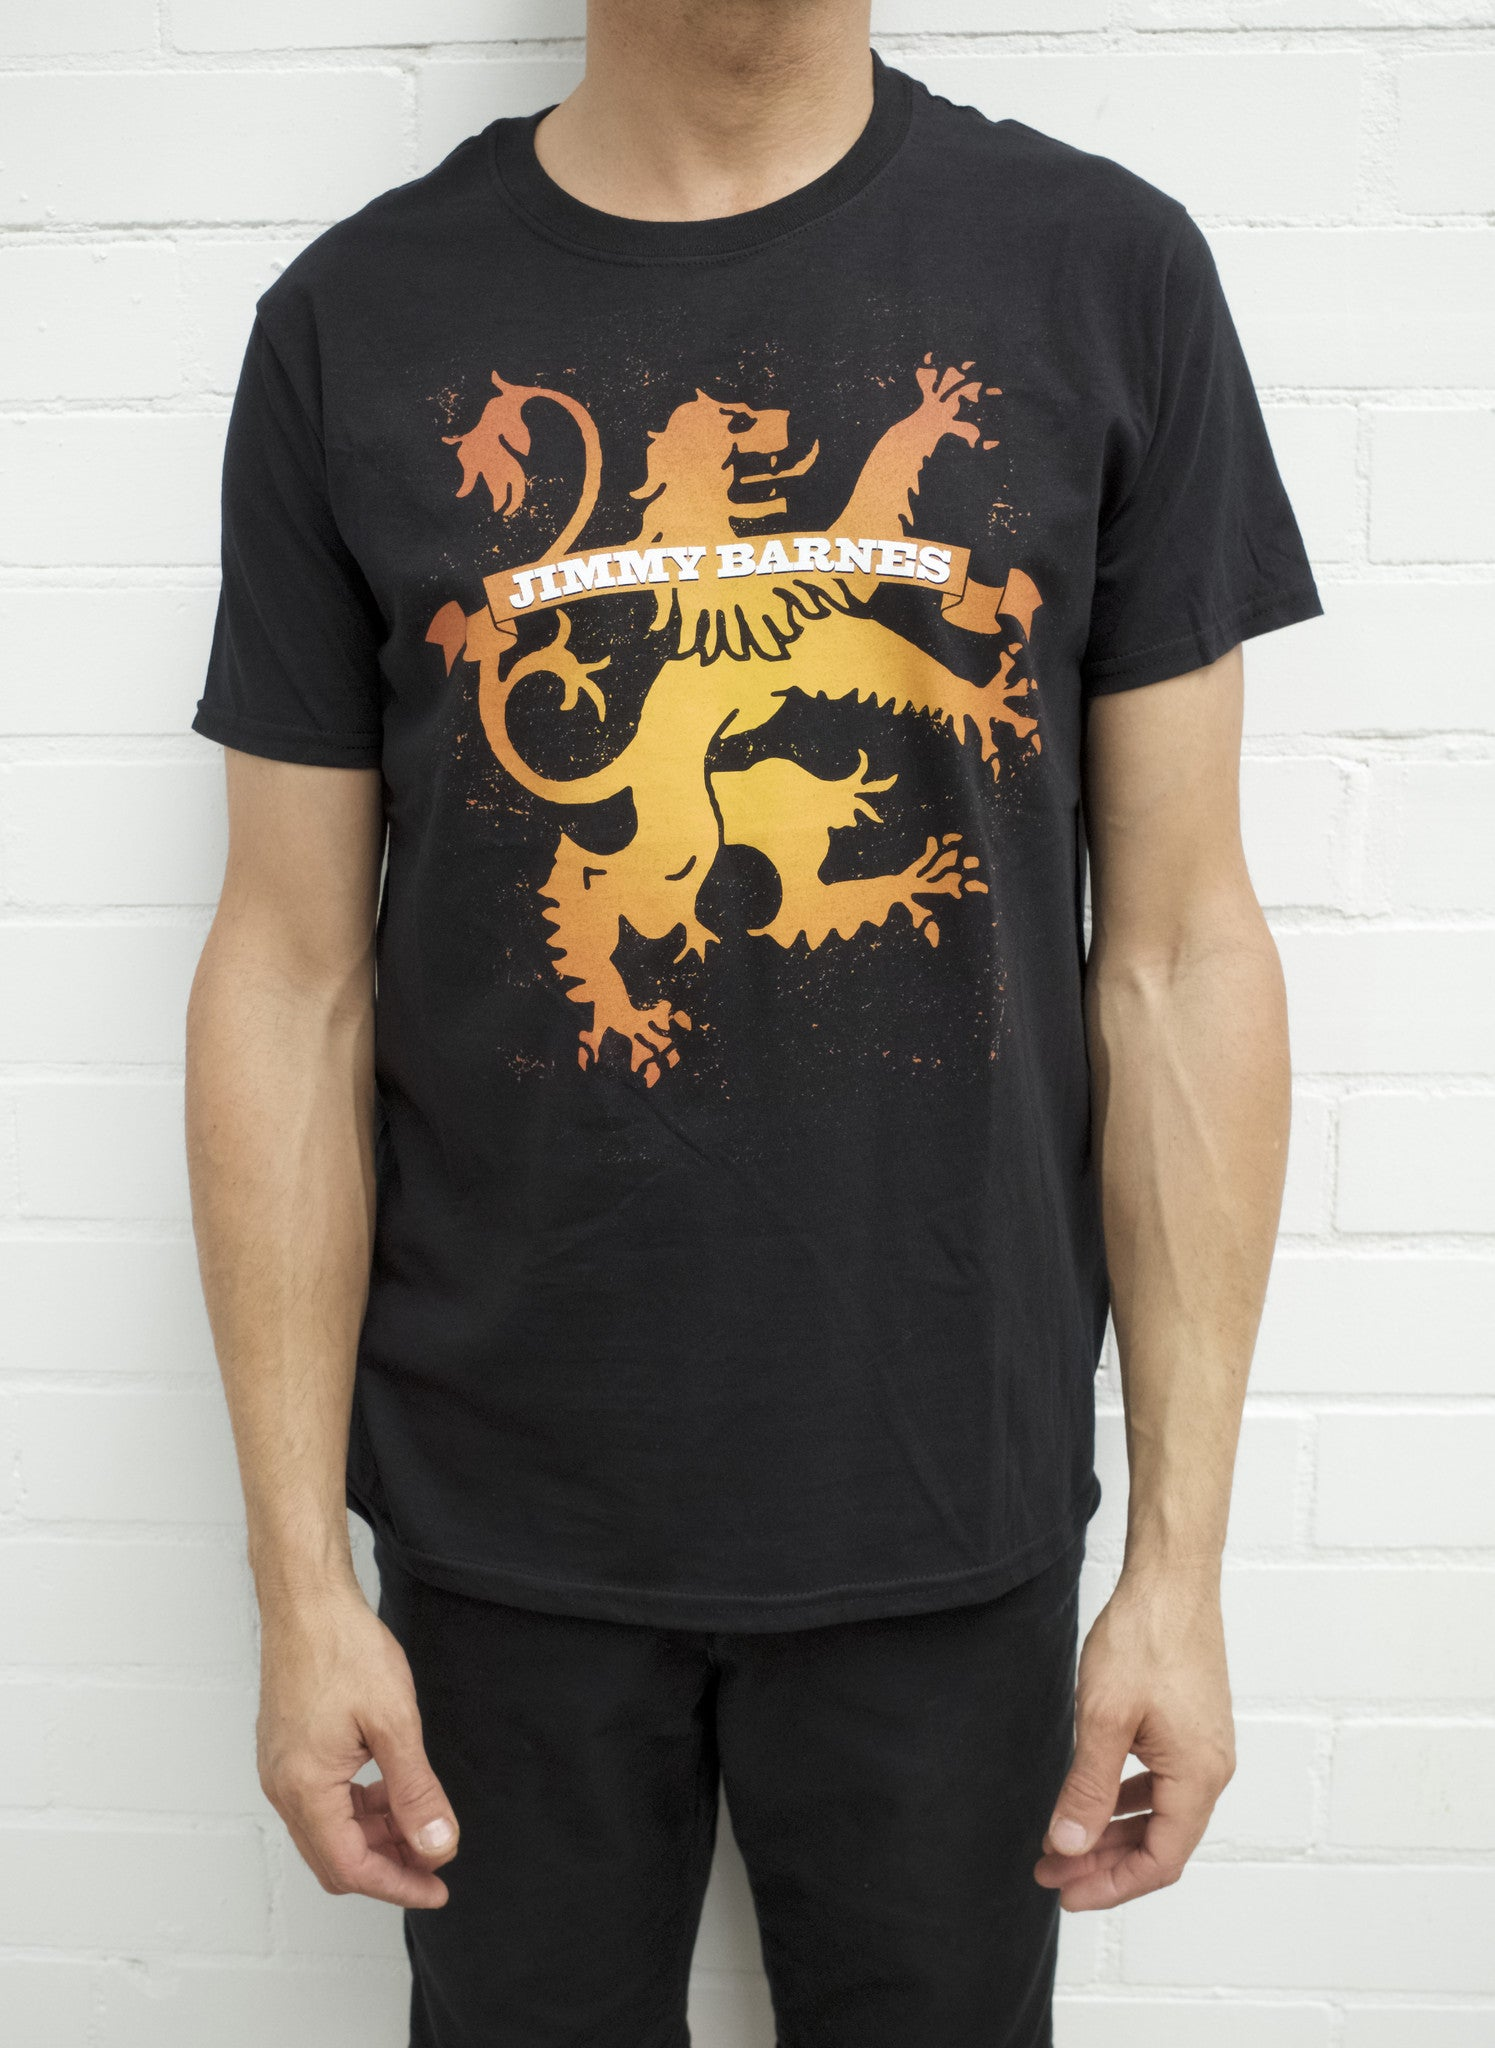 'Lion' 2014 Tour T-shirt